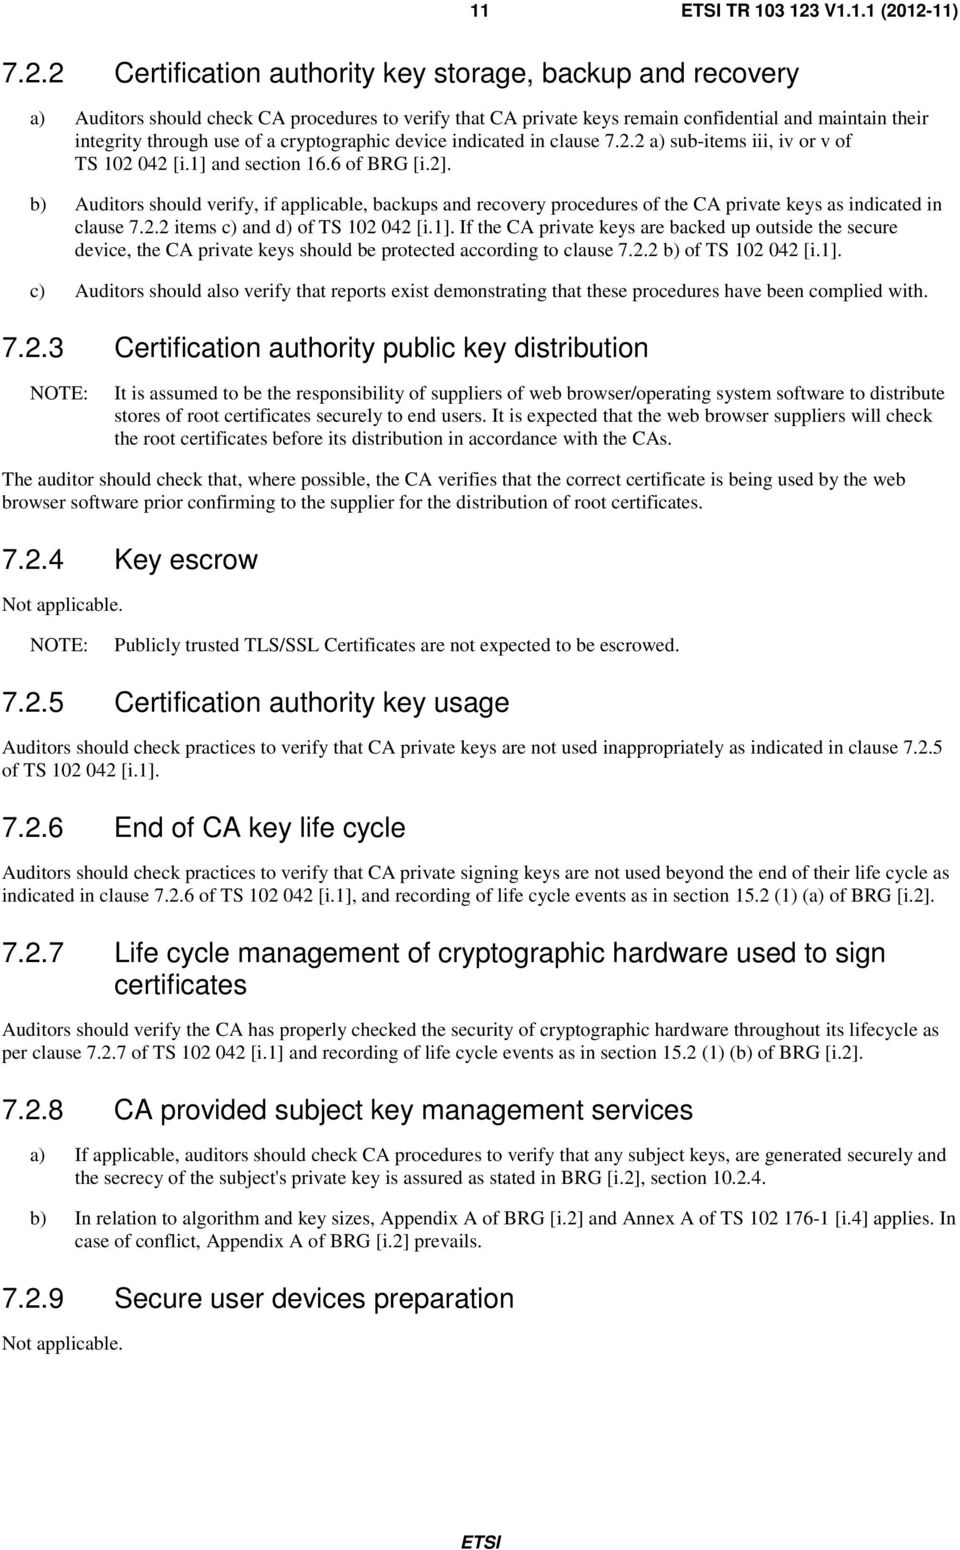 12-11) 7.2.2 Certification authority key storage, backup and recovery a) Auditors should check CA procedures to verify that CA private keys remain confidential and maintain their integrity through